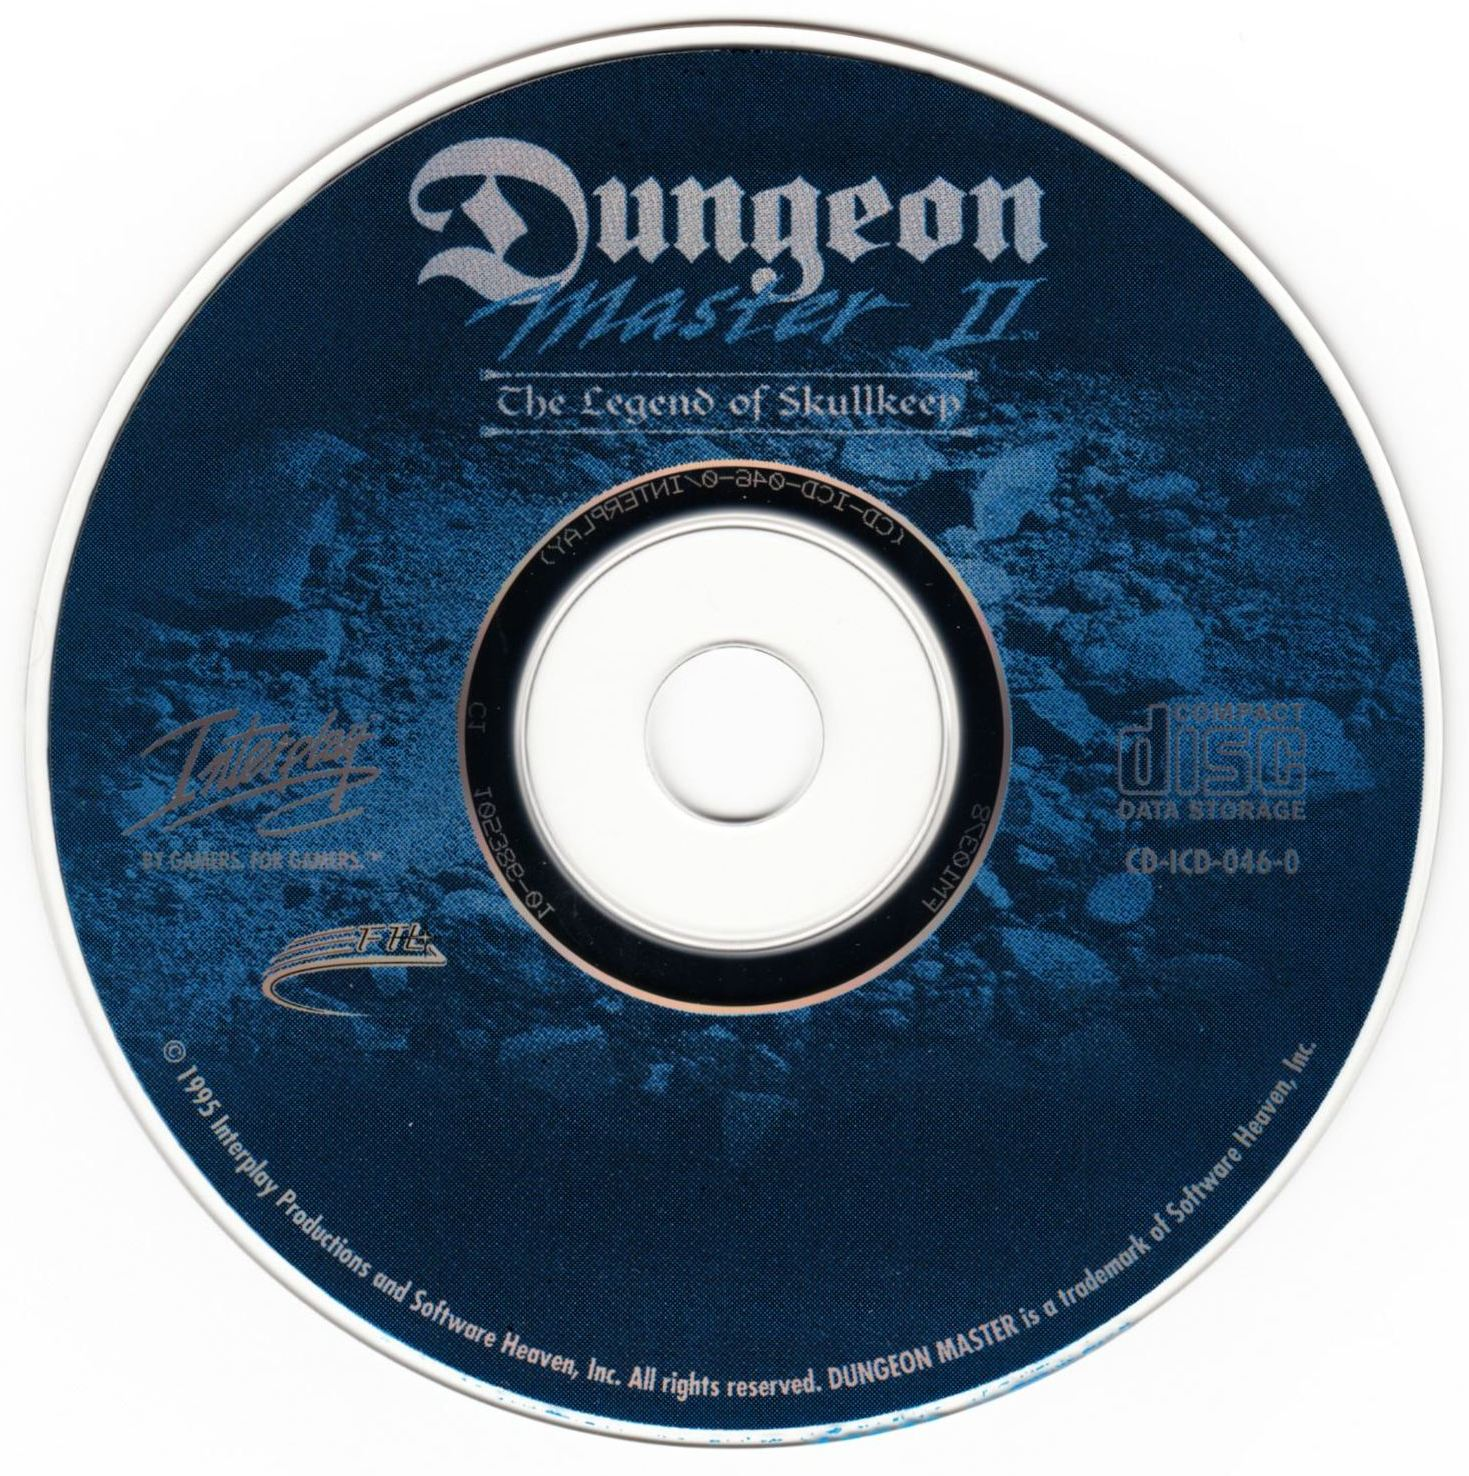 Game - Dungeon Master II - US - PC - Big Box - Compact Disc - Front - Scan